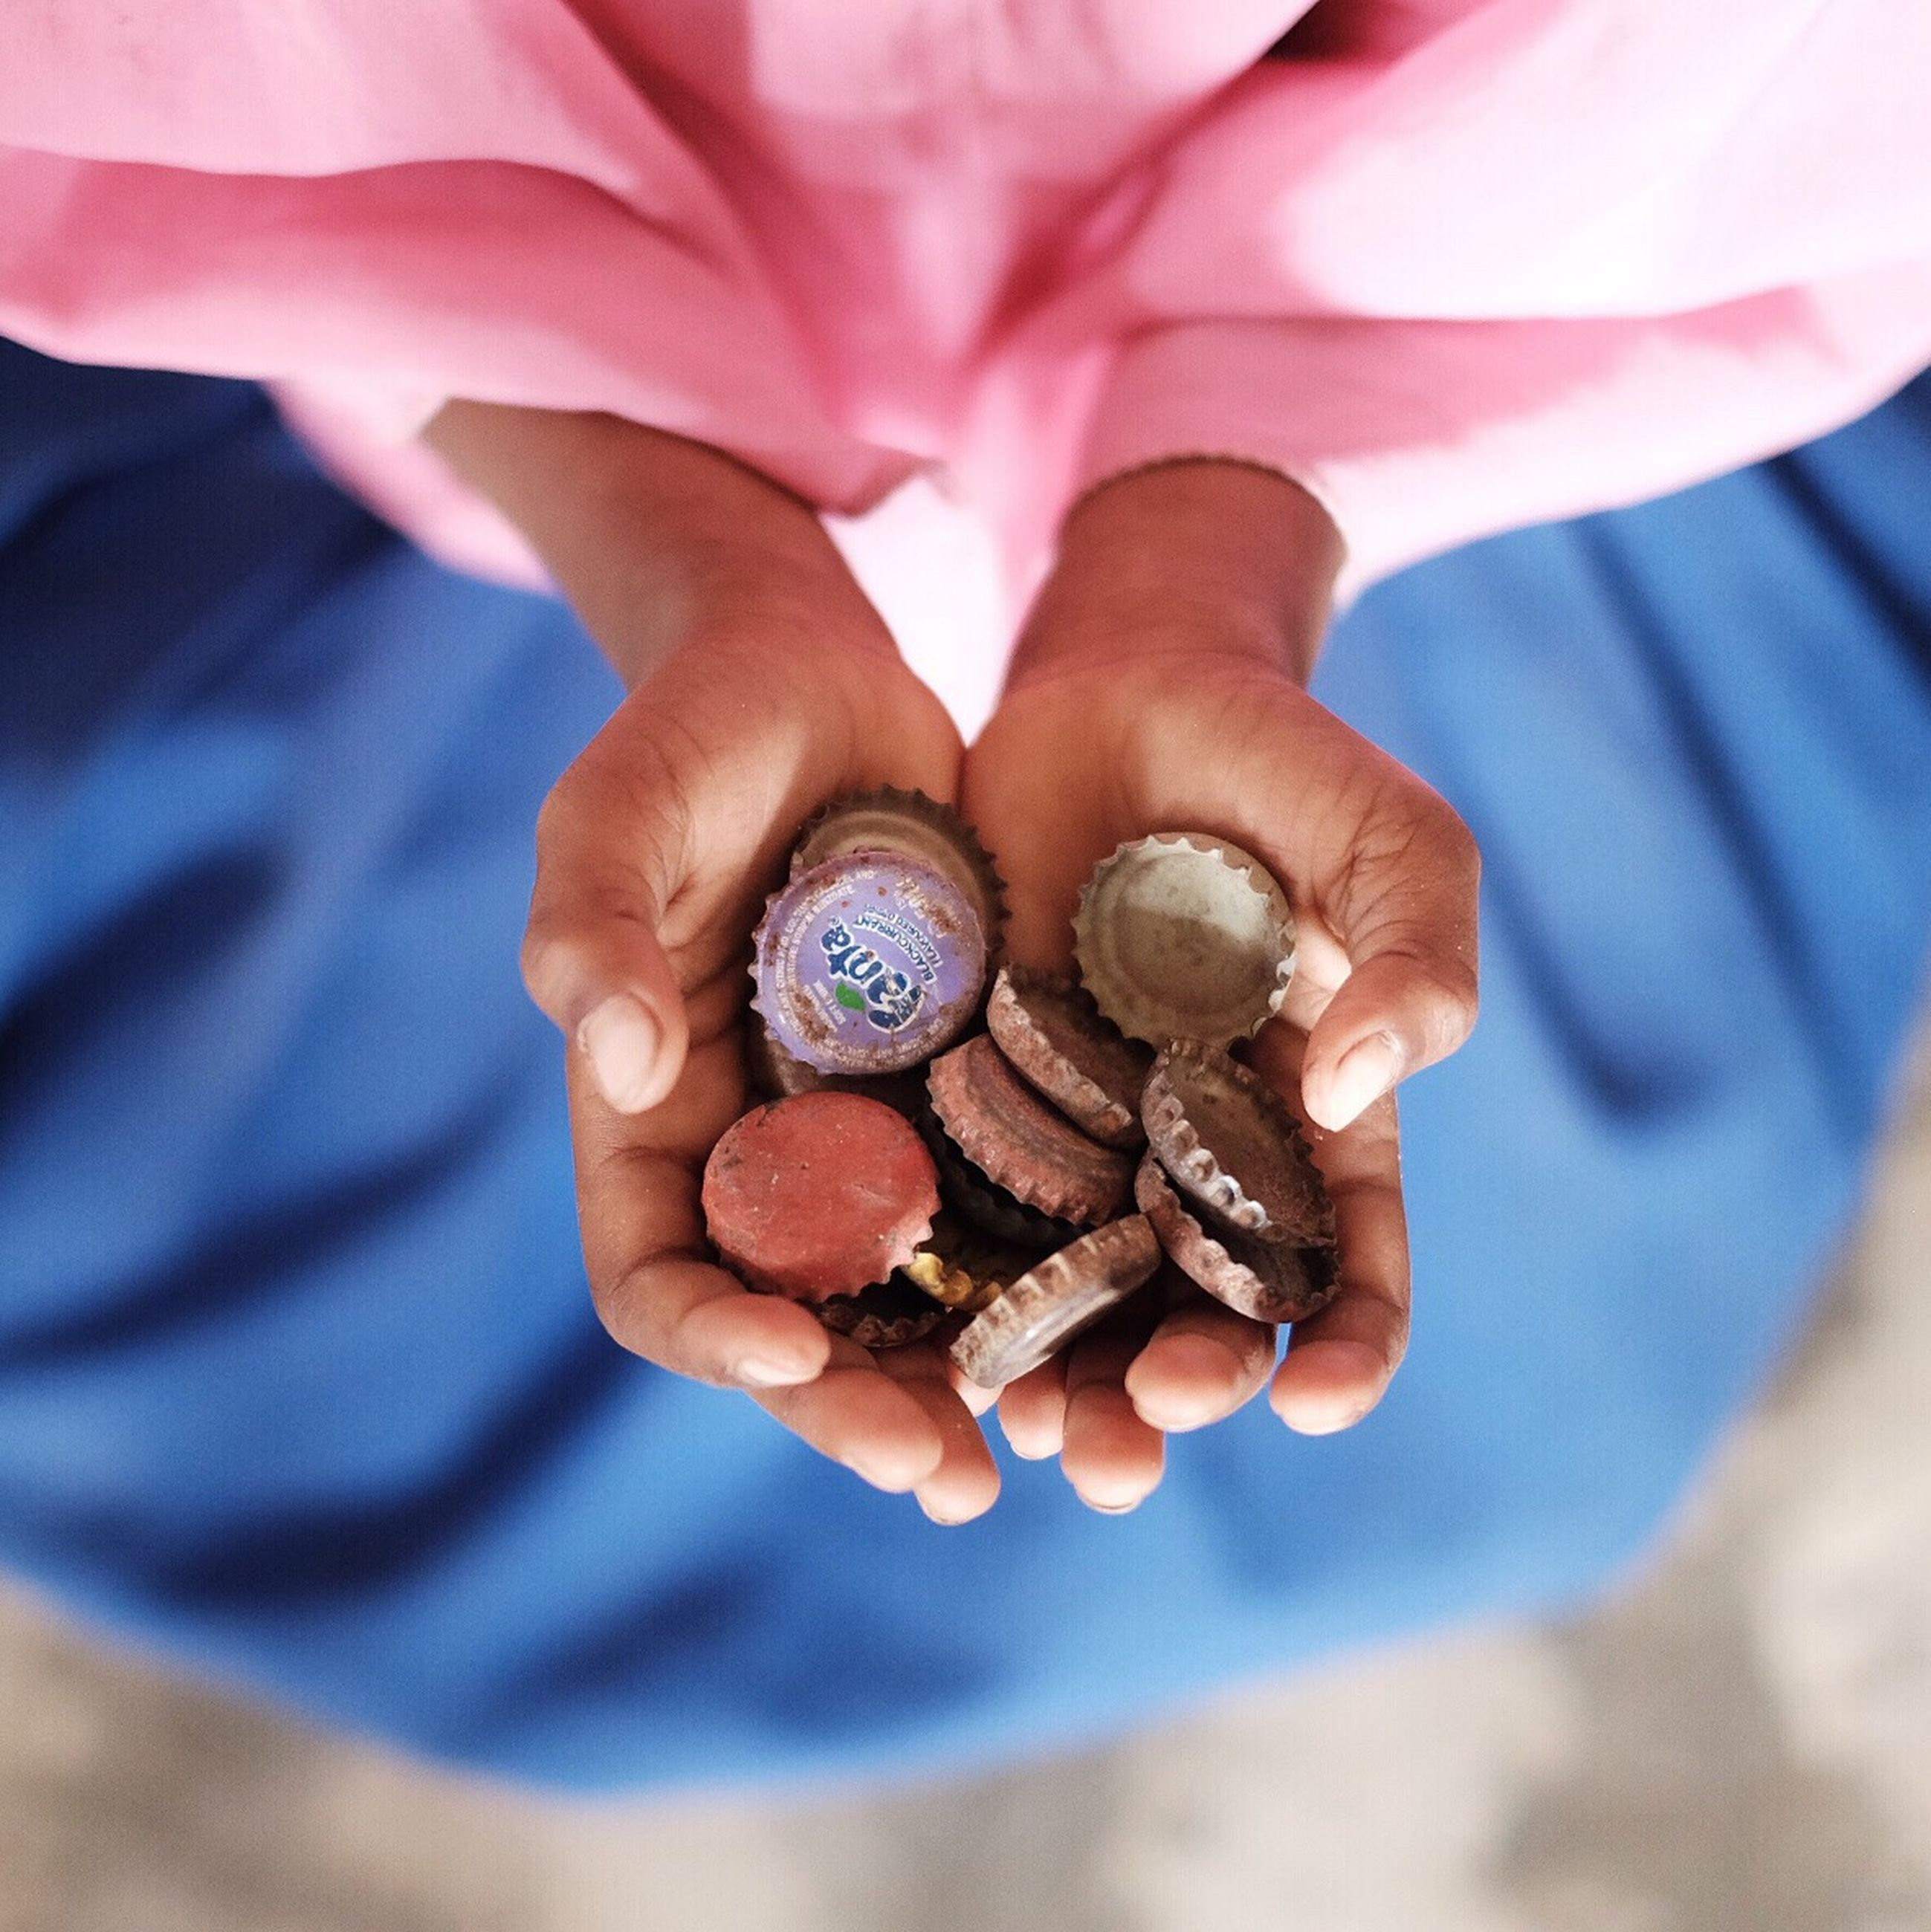 person, food and drink, freshness, close-up, holding, food, part of, human finger, focus on foreground, cropped, unrecognizable person, selective focus, fruit, healthy eating, high angle view, seashell, day